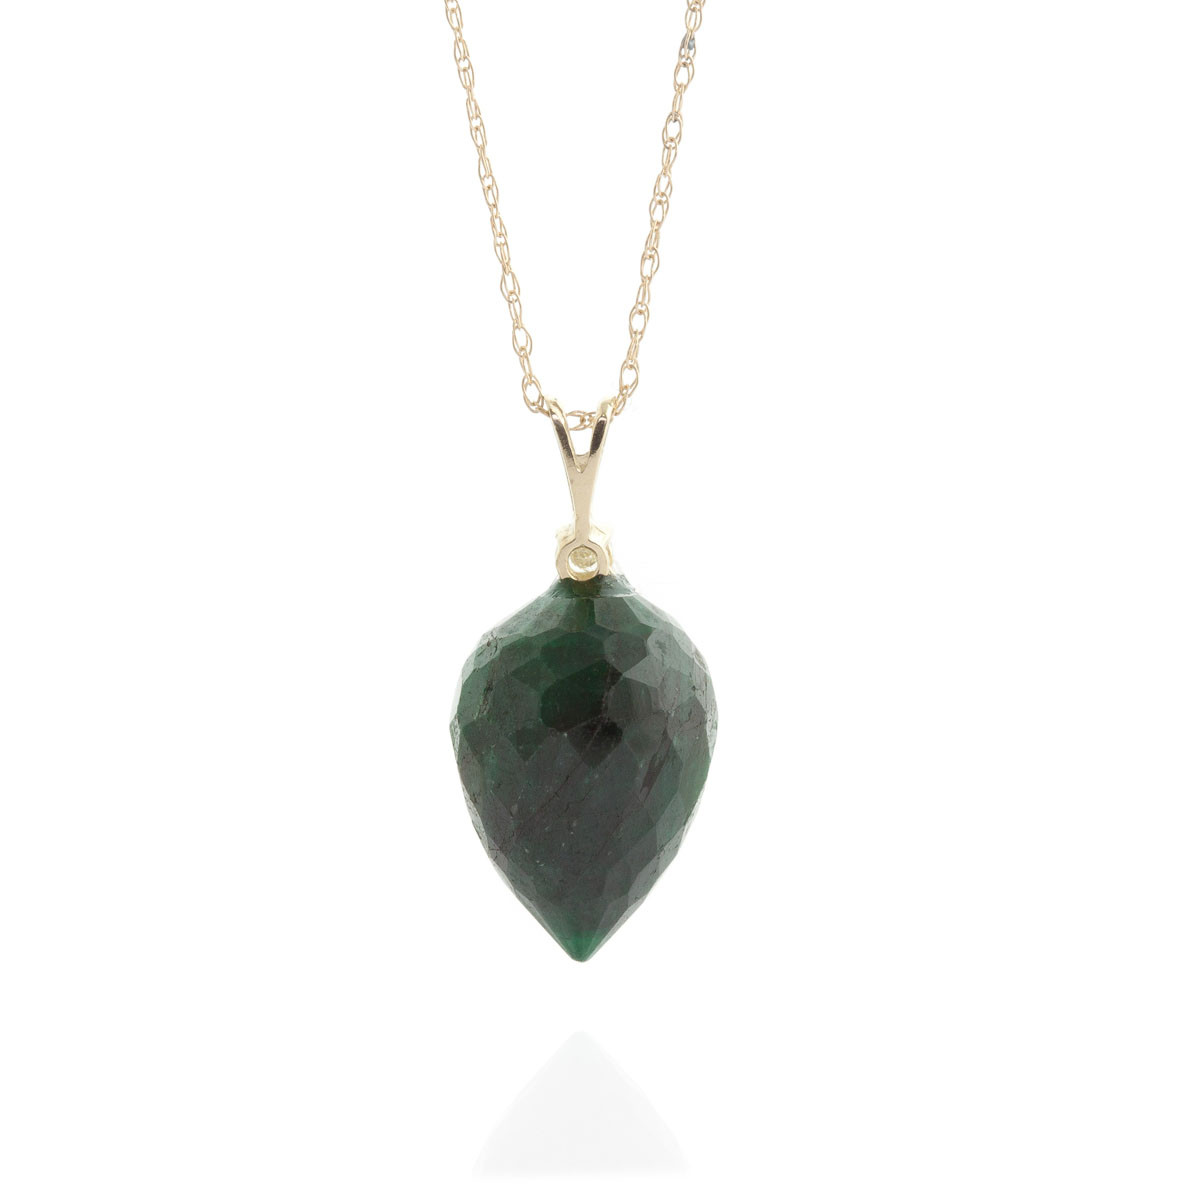 Pointed Briolette Cut Emerald Pendant Necklace 12.95 ctw in 9ct Gold